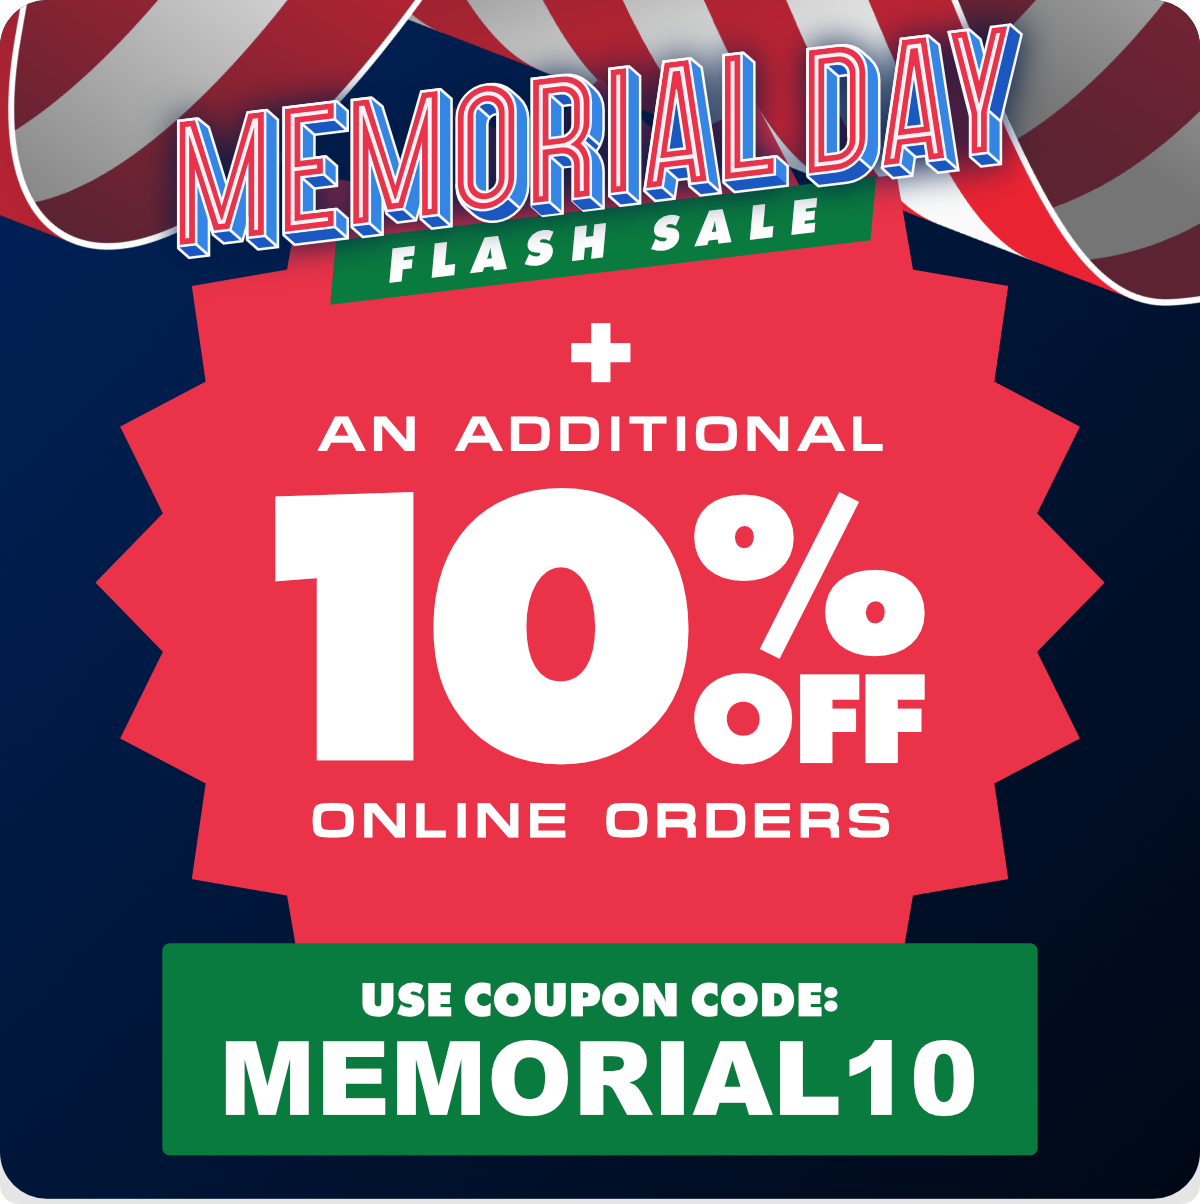 Memorial Day Flash Sale